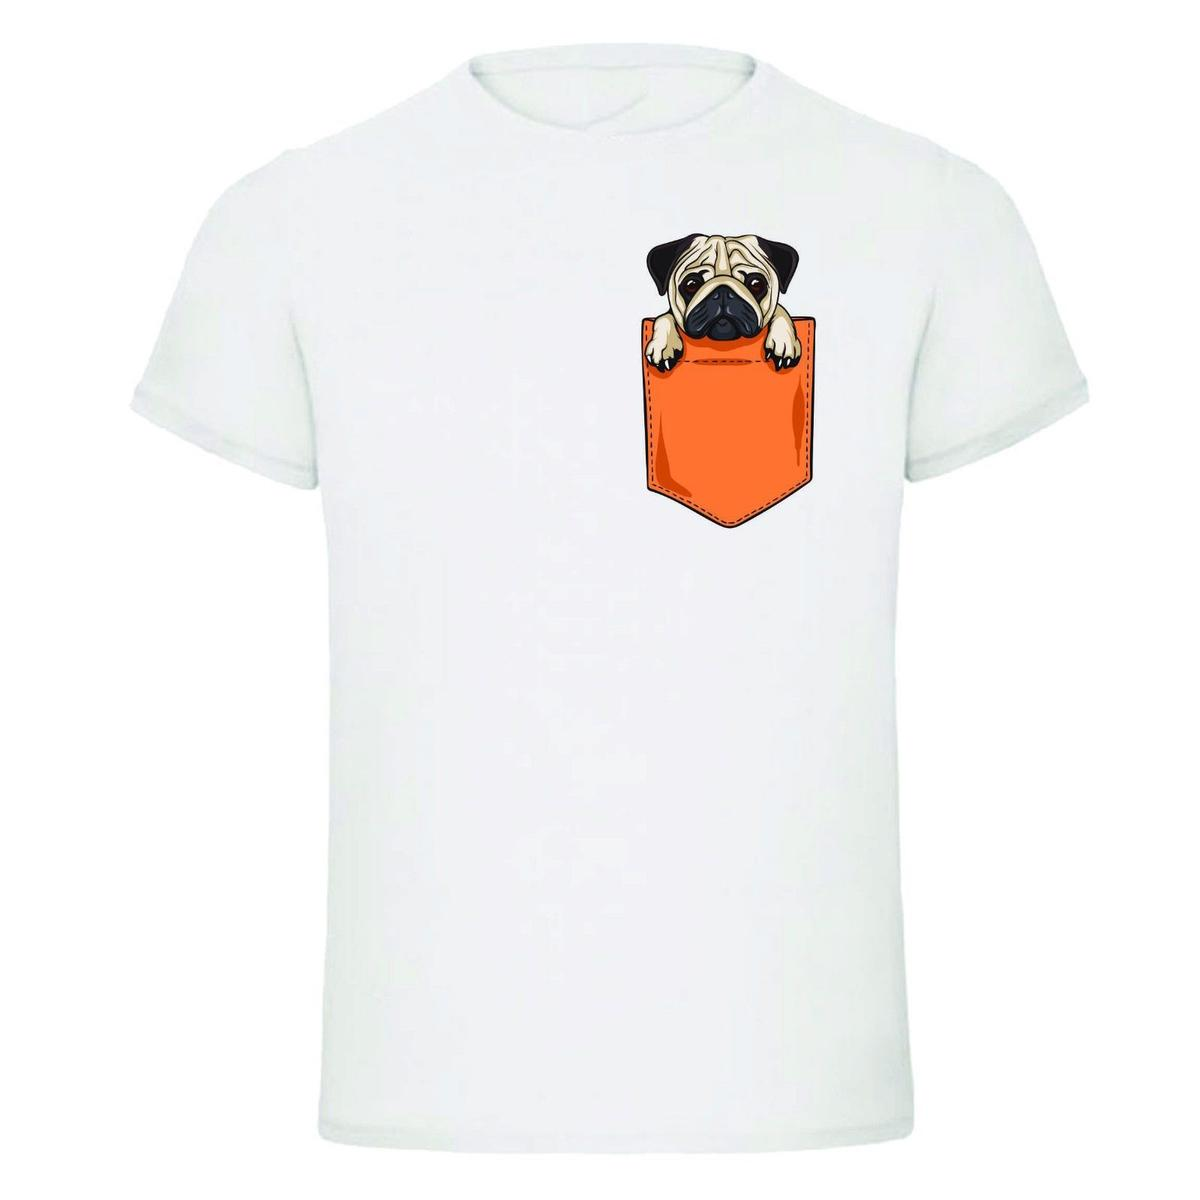 Pug In Pocket Funny Comical Dog New Design Kids Mens T Shirt Tees